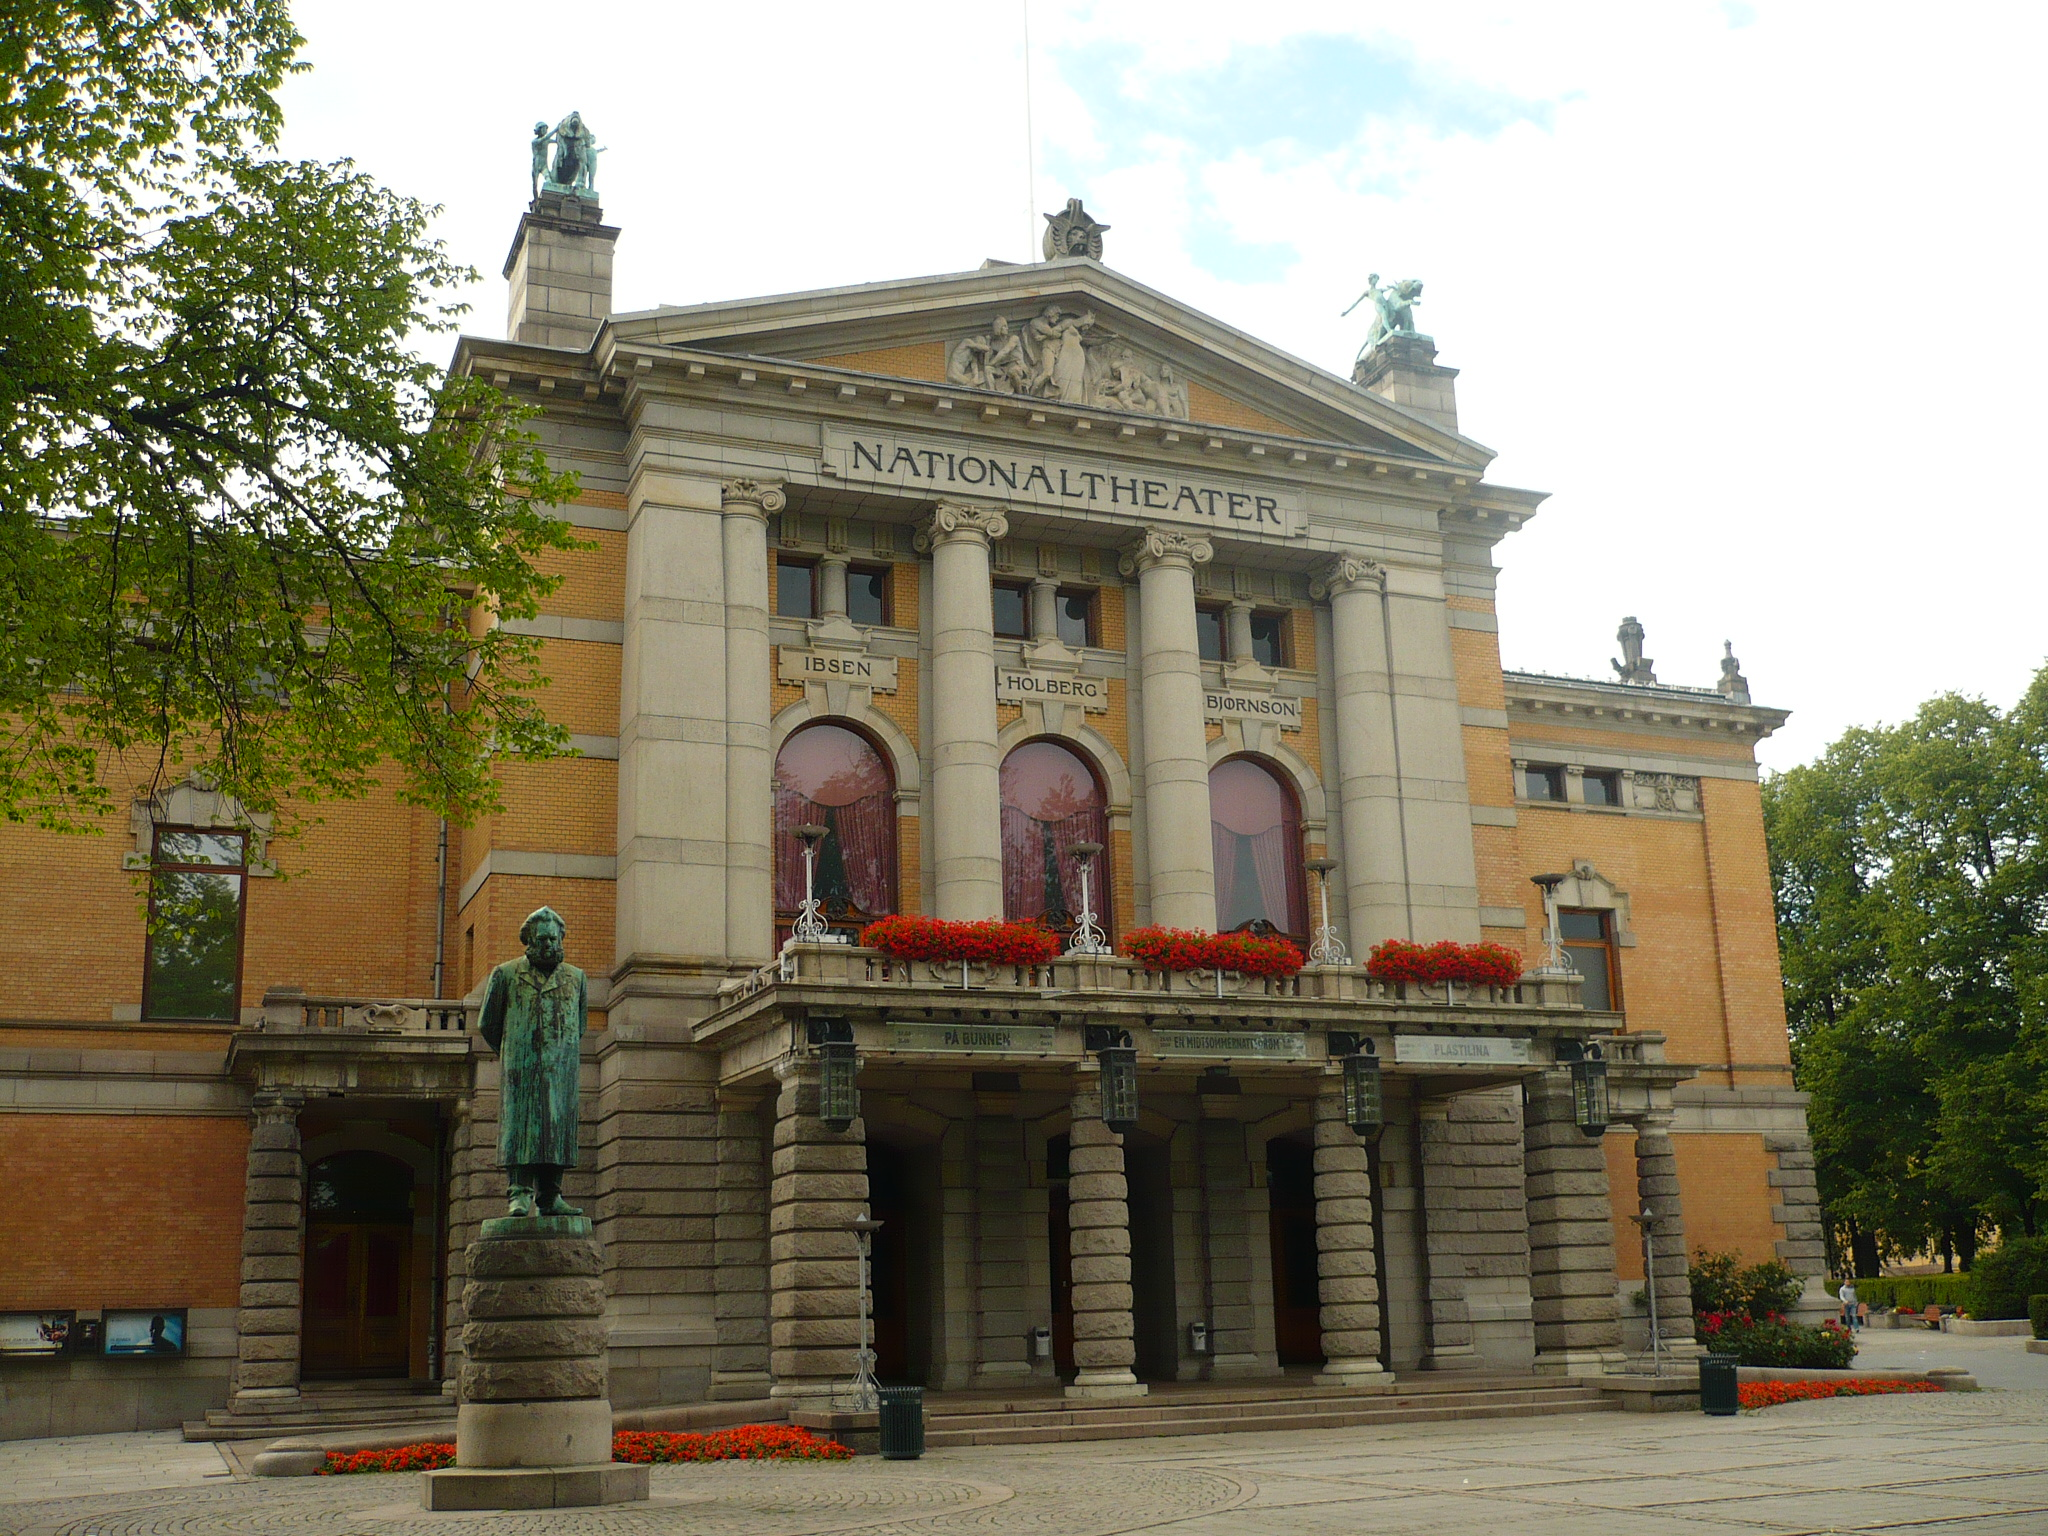 Oslo - National Theater